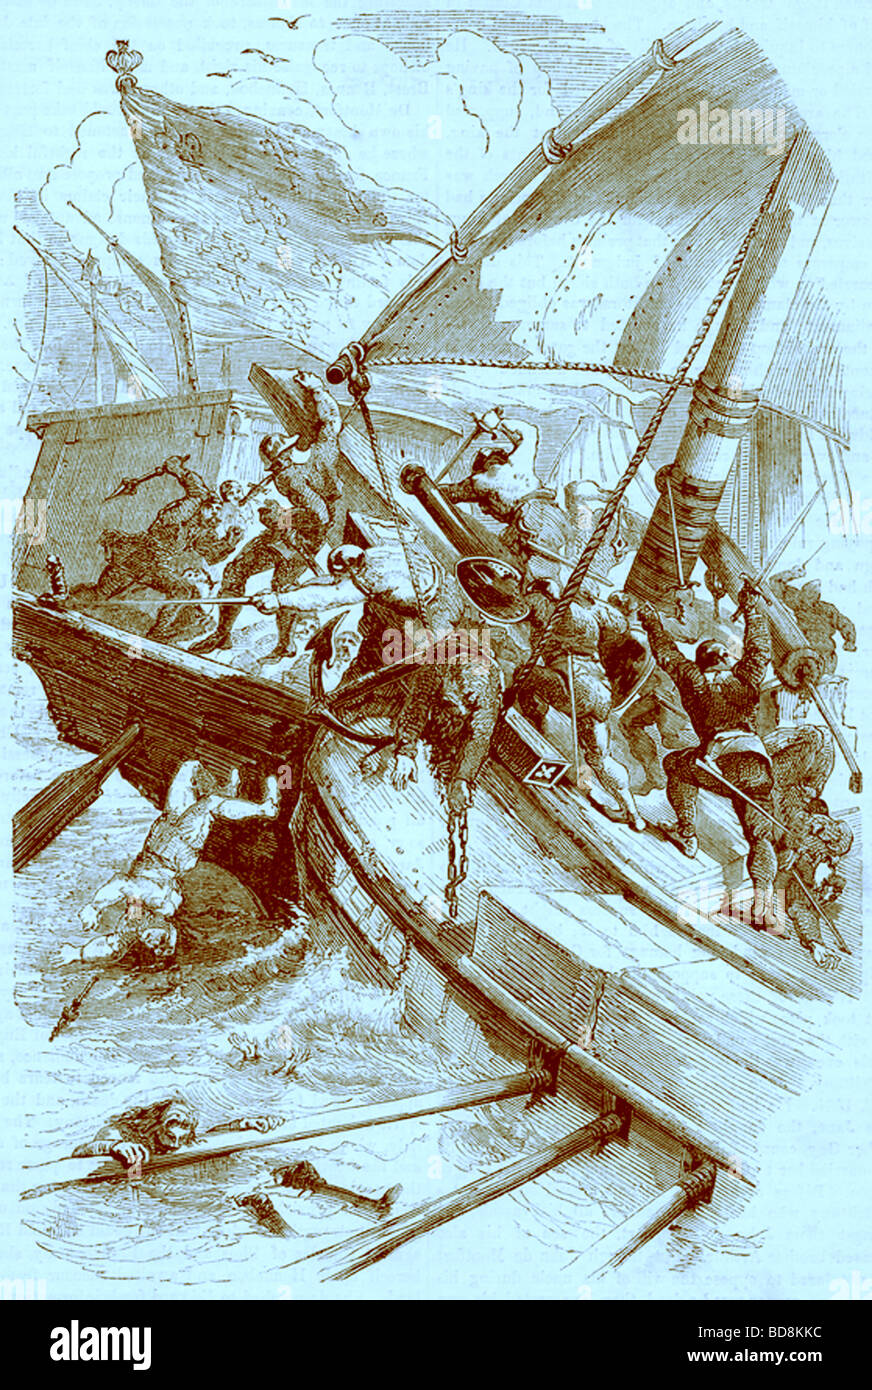 The Battle of Sluys Illustration from John Cassell s Illustrated History of England W Kent 1857 1858 - Stock Image